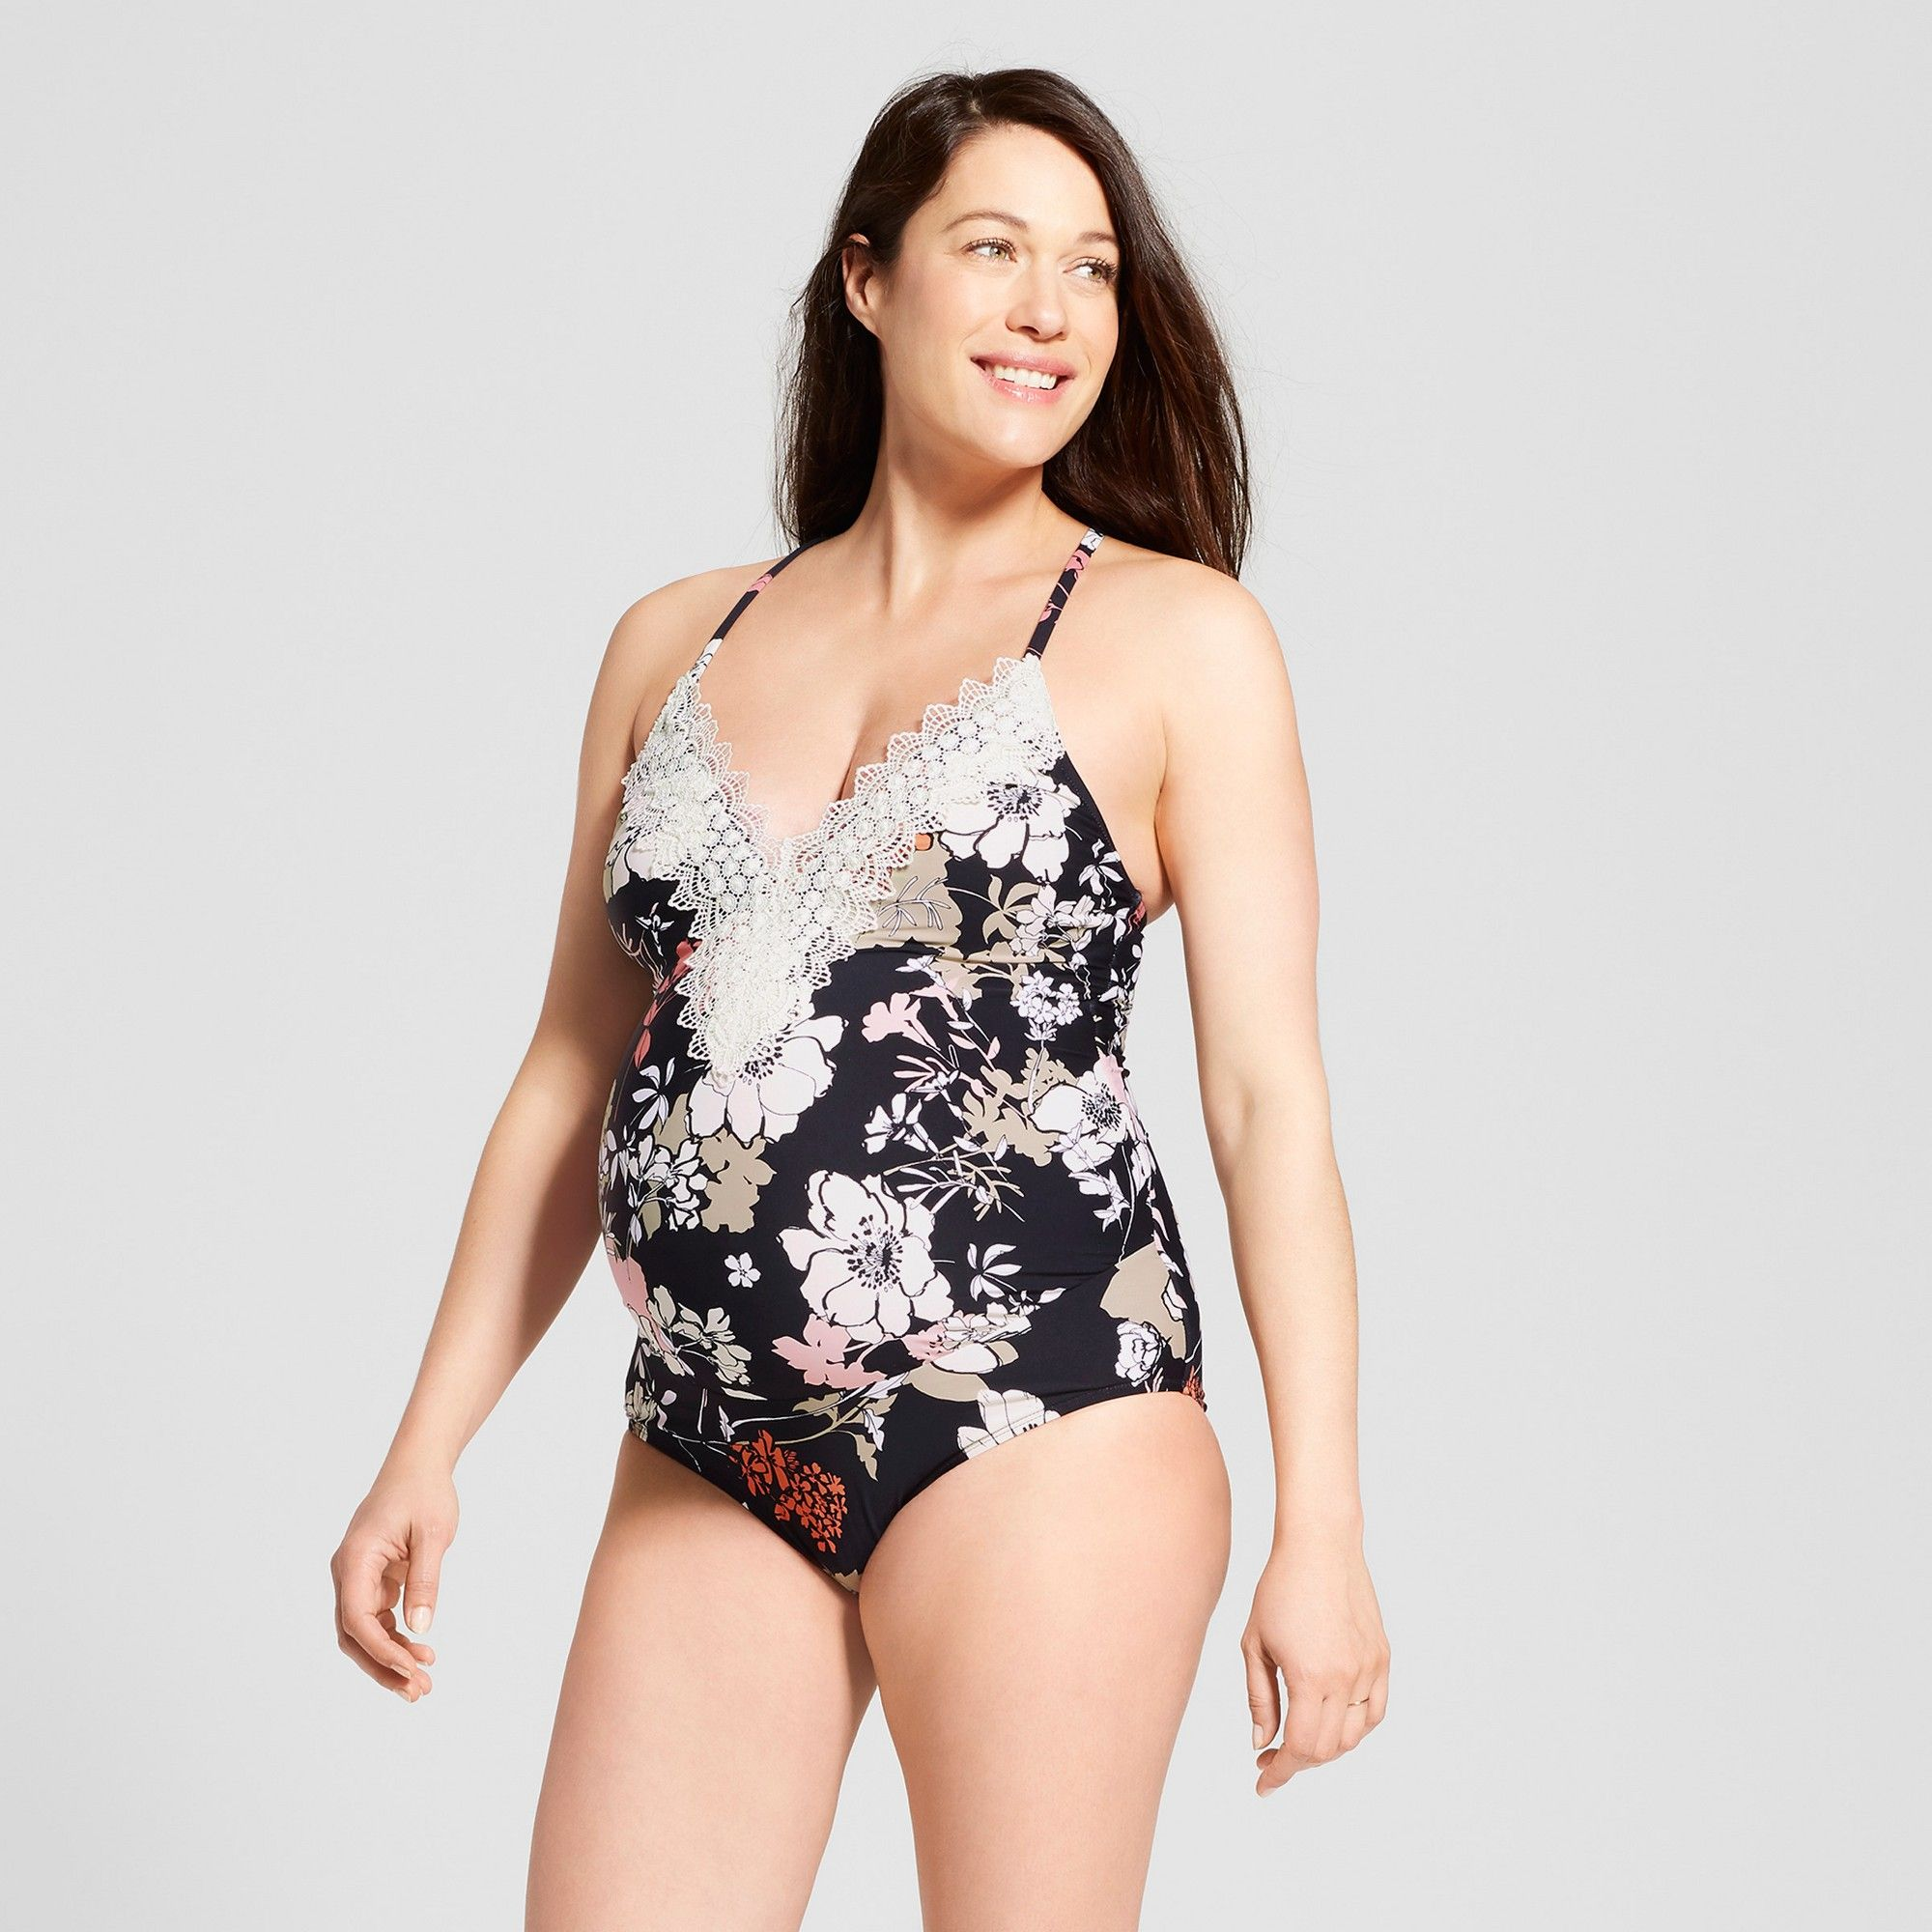 4decebc09c9b4 Maternity Floral Printed Lace Front One Piece Swimsuit - Sea Angel - Black S